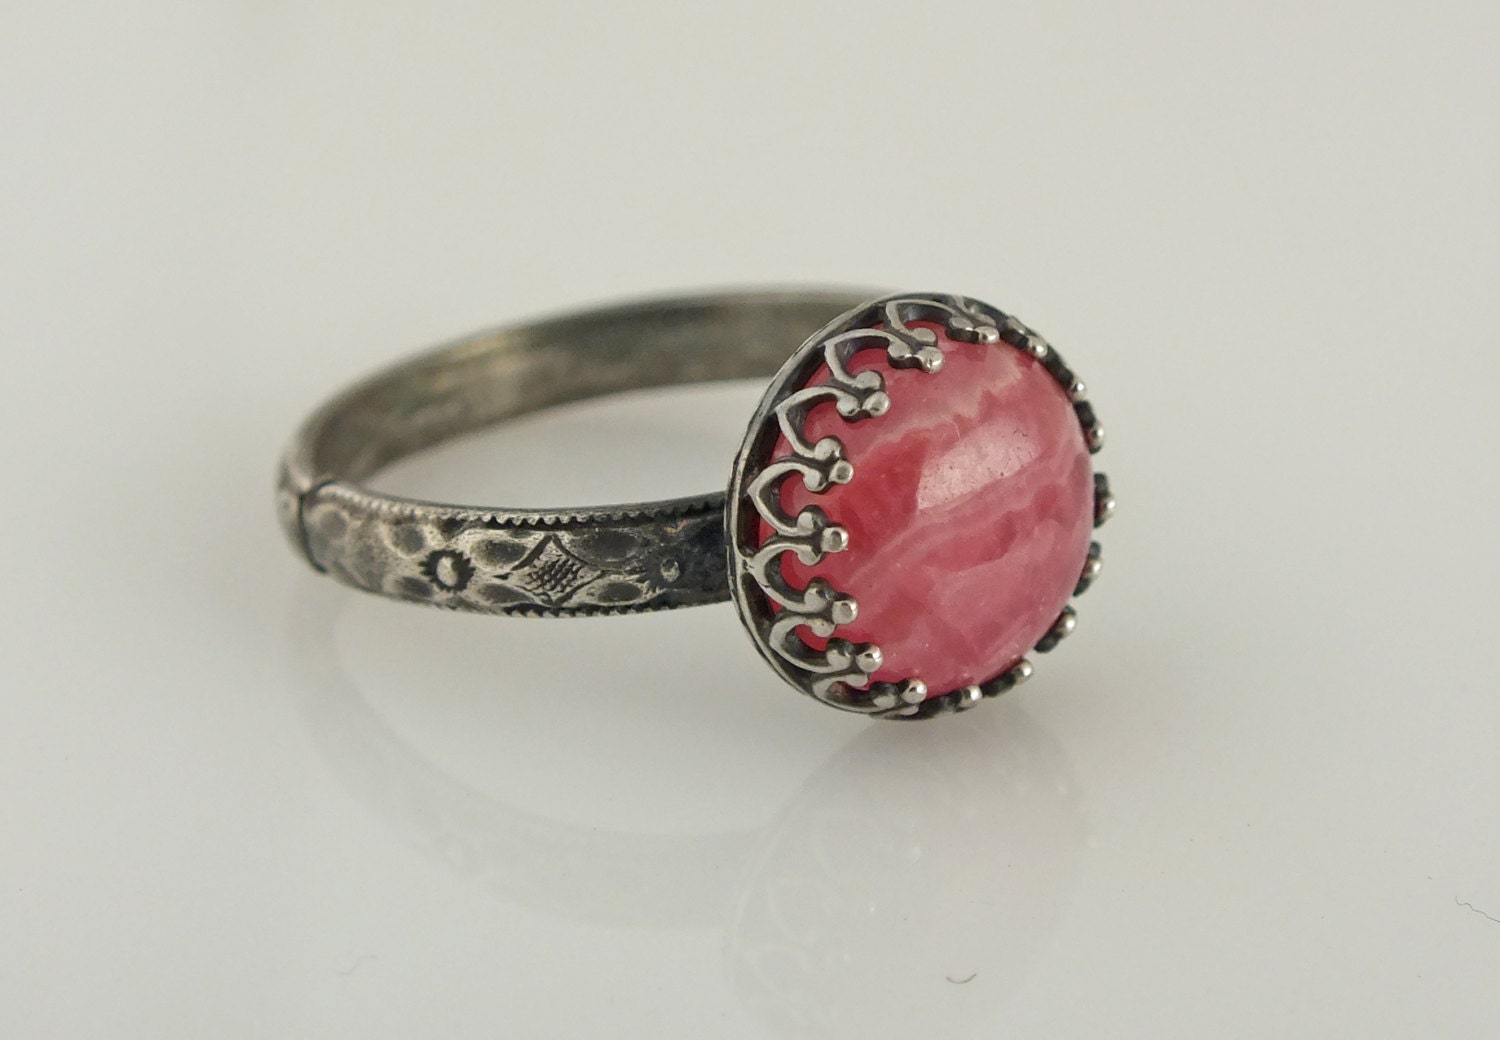 Rhodochrosite Oxidized Crown Ring, Pink Gemstone Bezel Ring, Size 8 Ring, Antiqued Floral Band Ring - GemLoungeJewelry